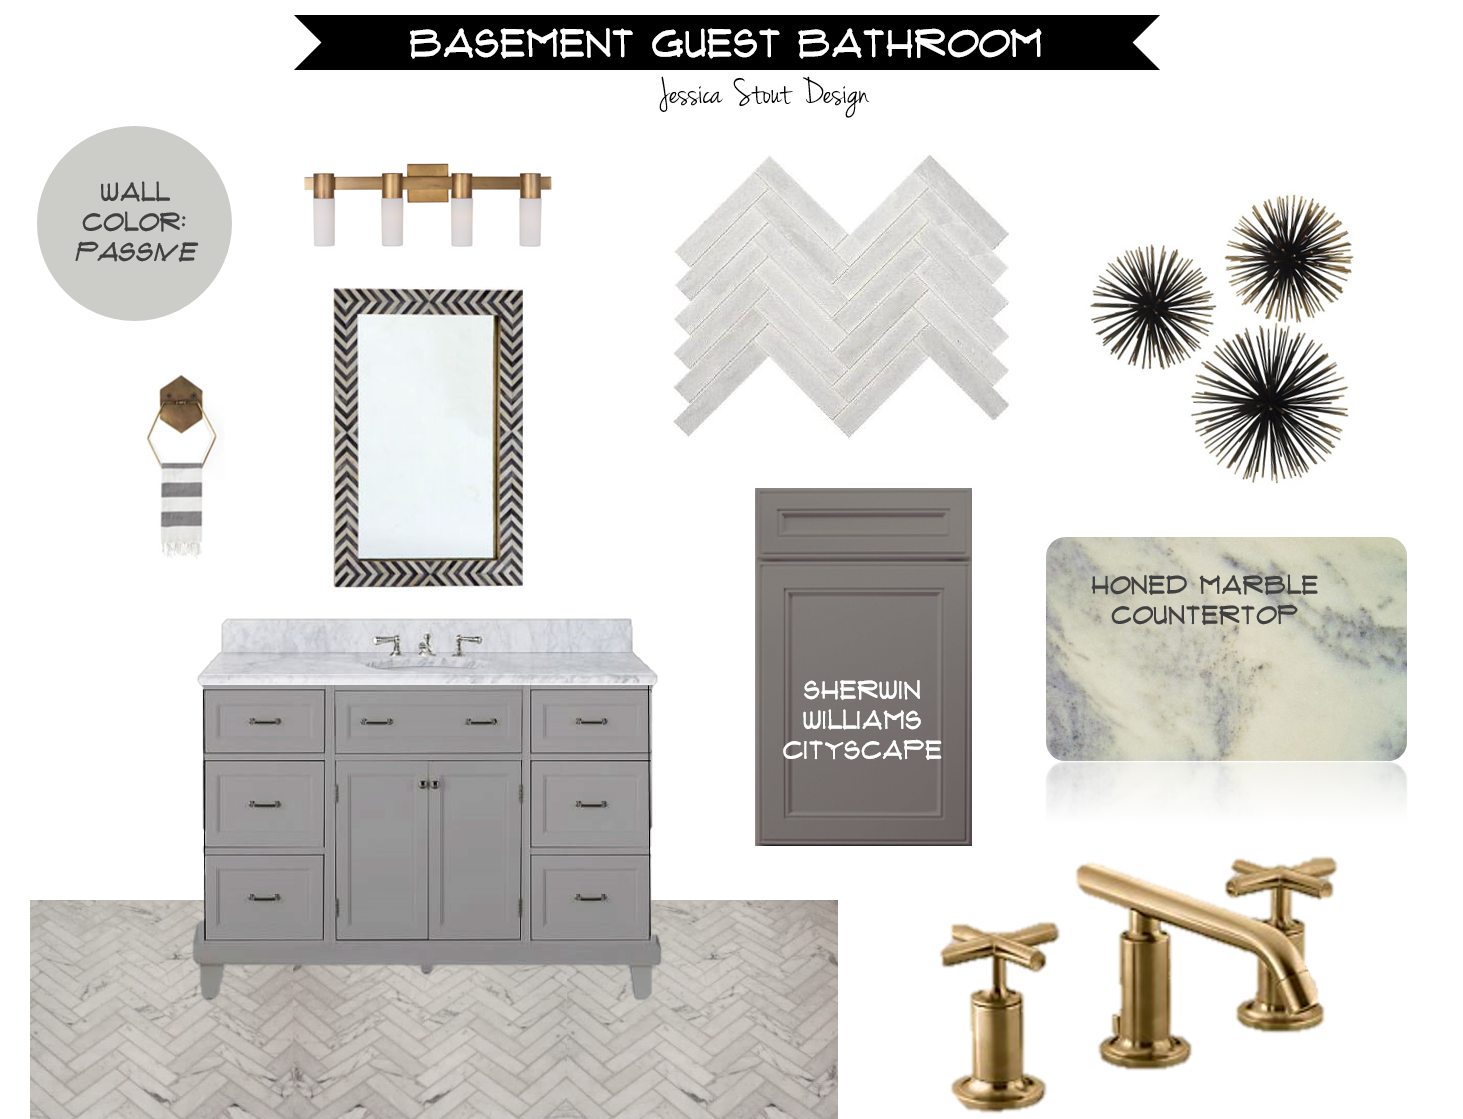 Bathroom Design Board jessica stout design}: may 2015